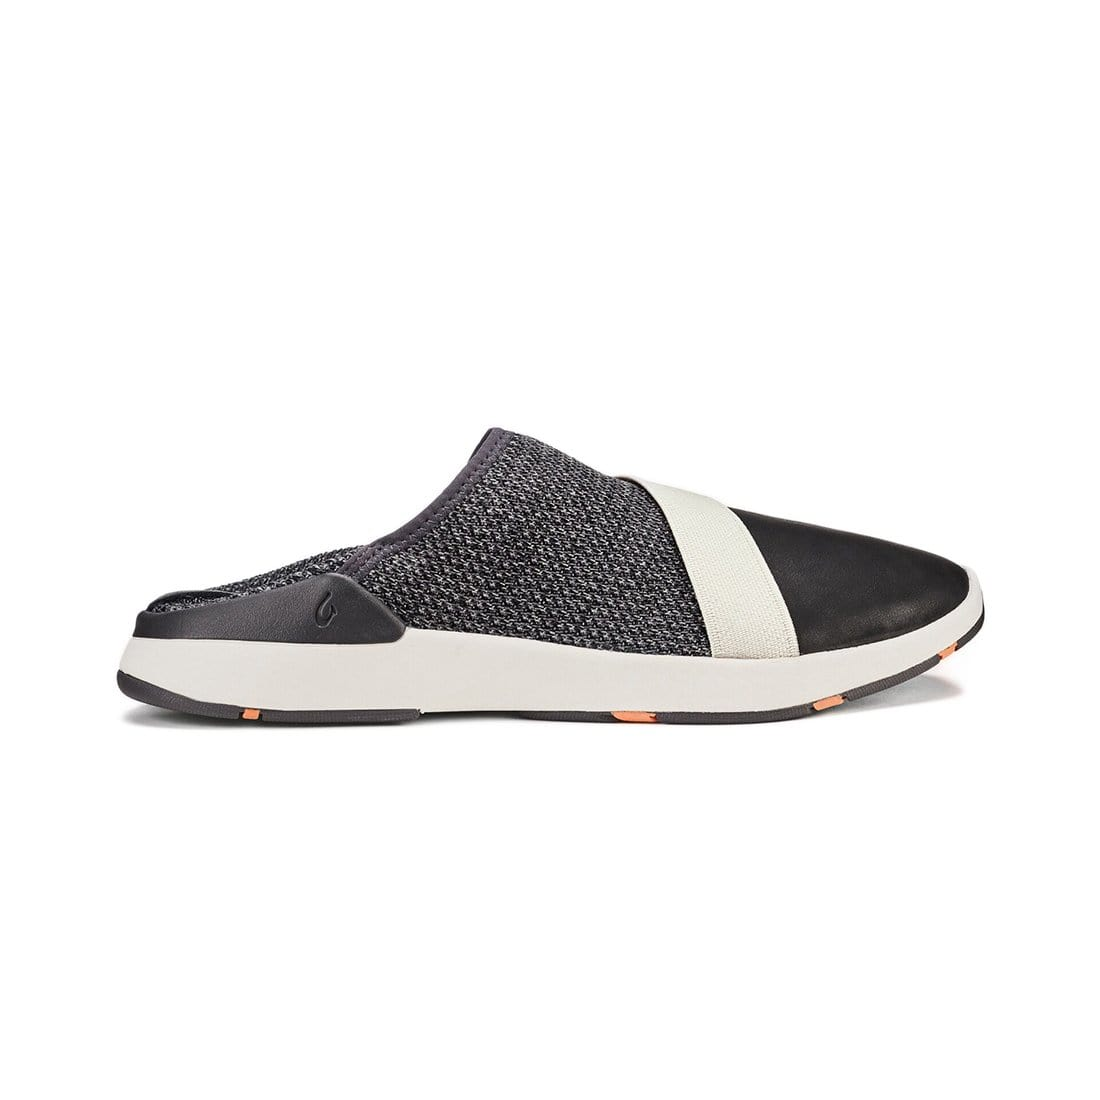 Olukai Women's Miki Slip On 20383 Breathable Microfiber Lined Shoe